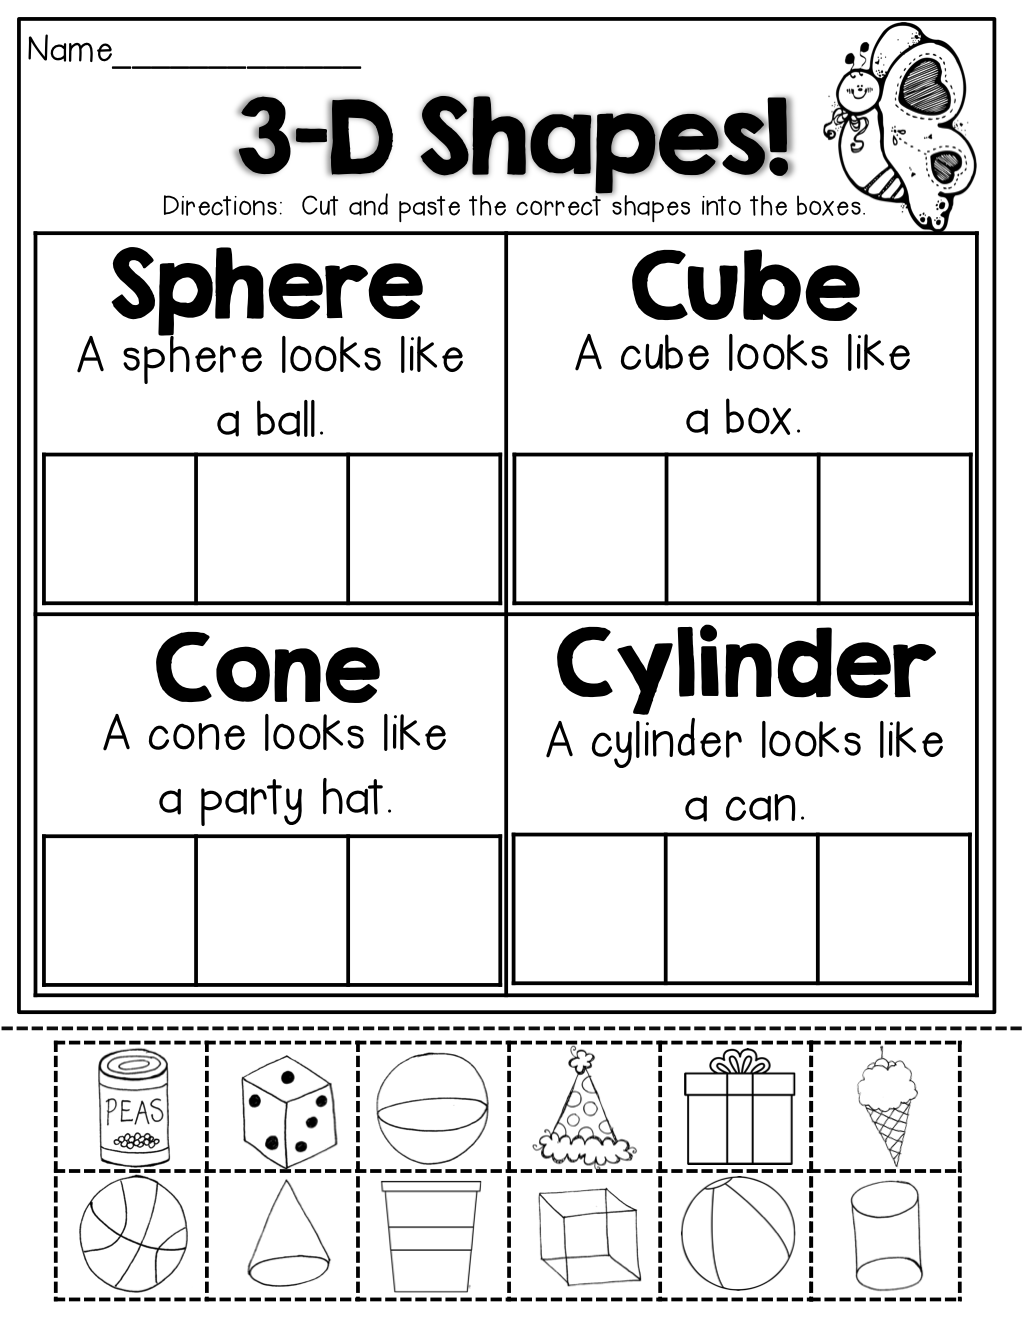 3-D Shapes! TONS of great printables that hit core skills ...